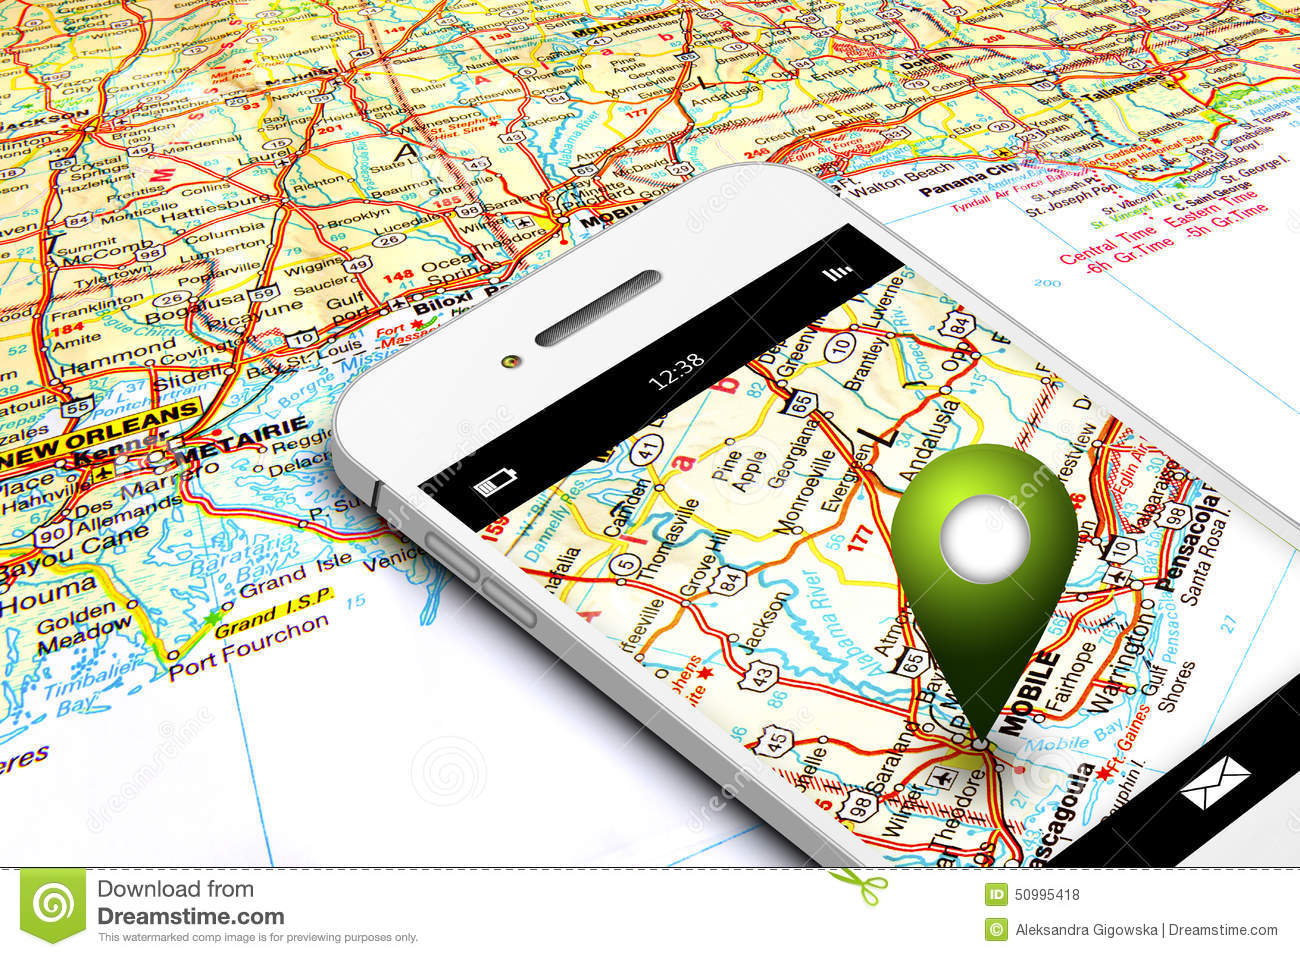 Mobile Phone With Gps And Map In Background Royalty Free Stock Image Cartoondealer Com 50996476